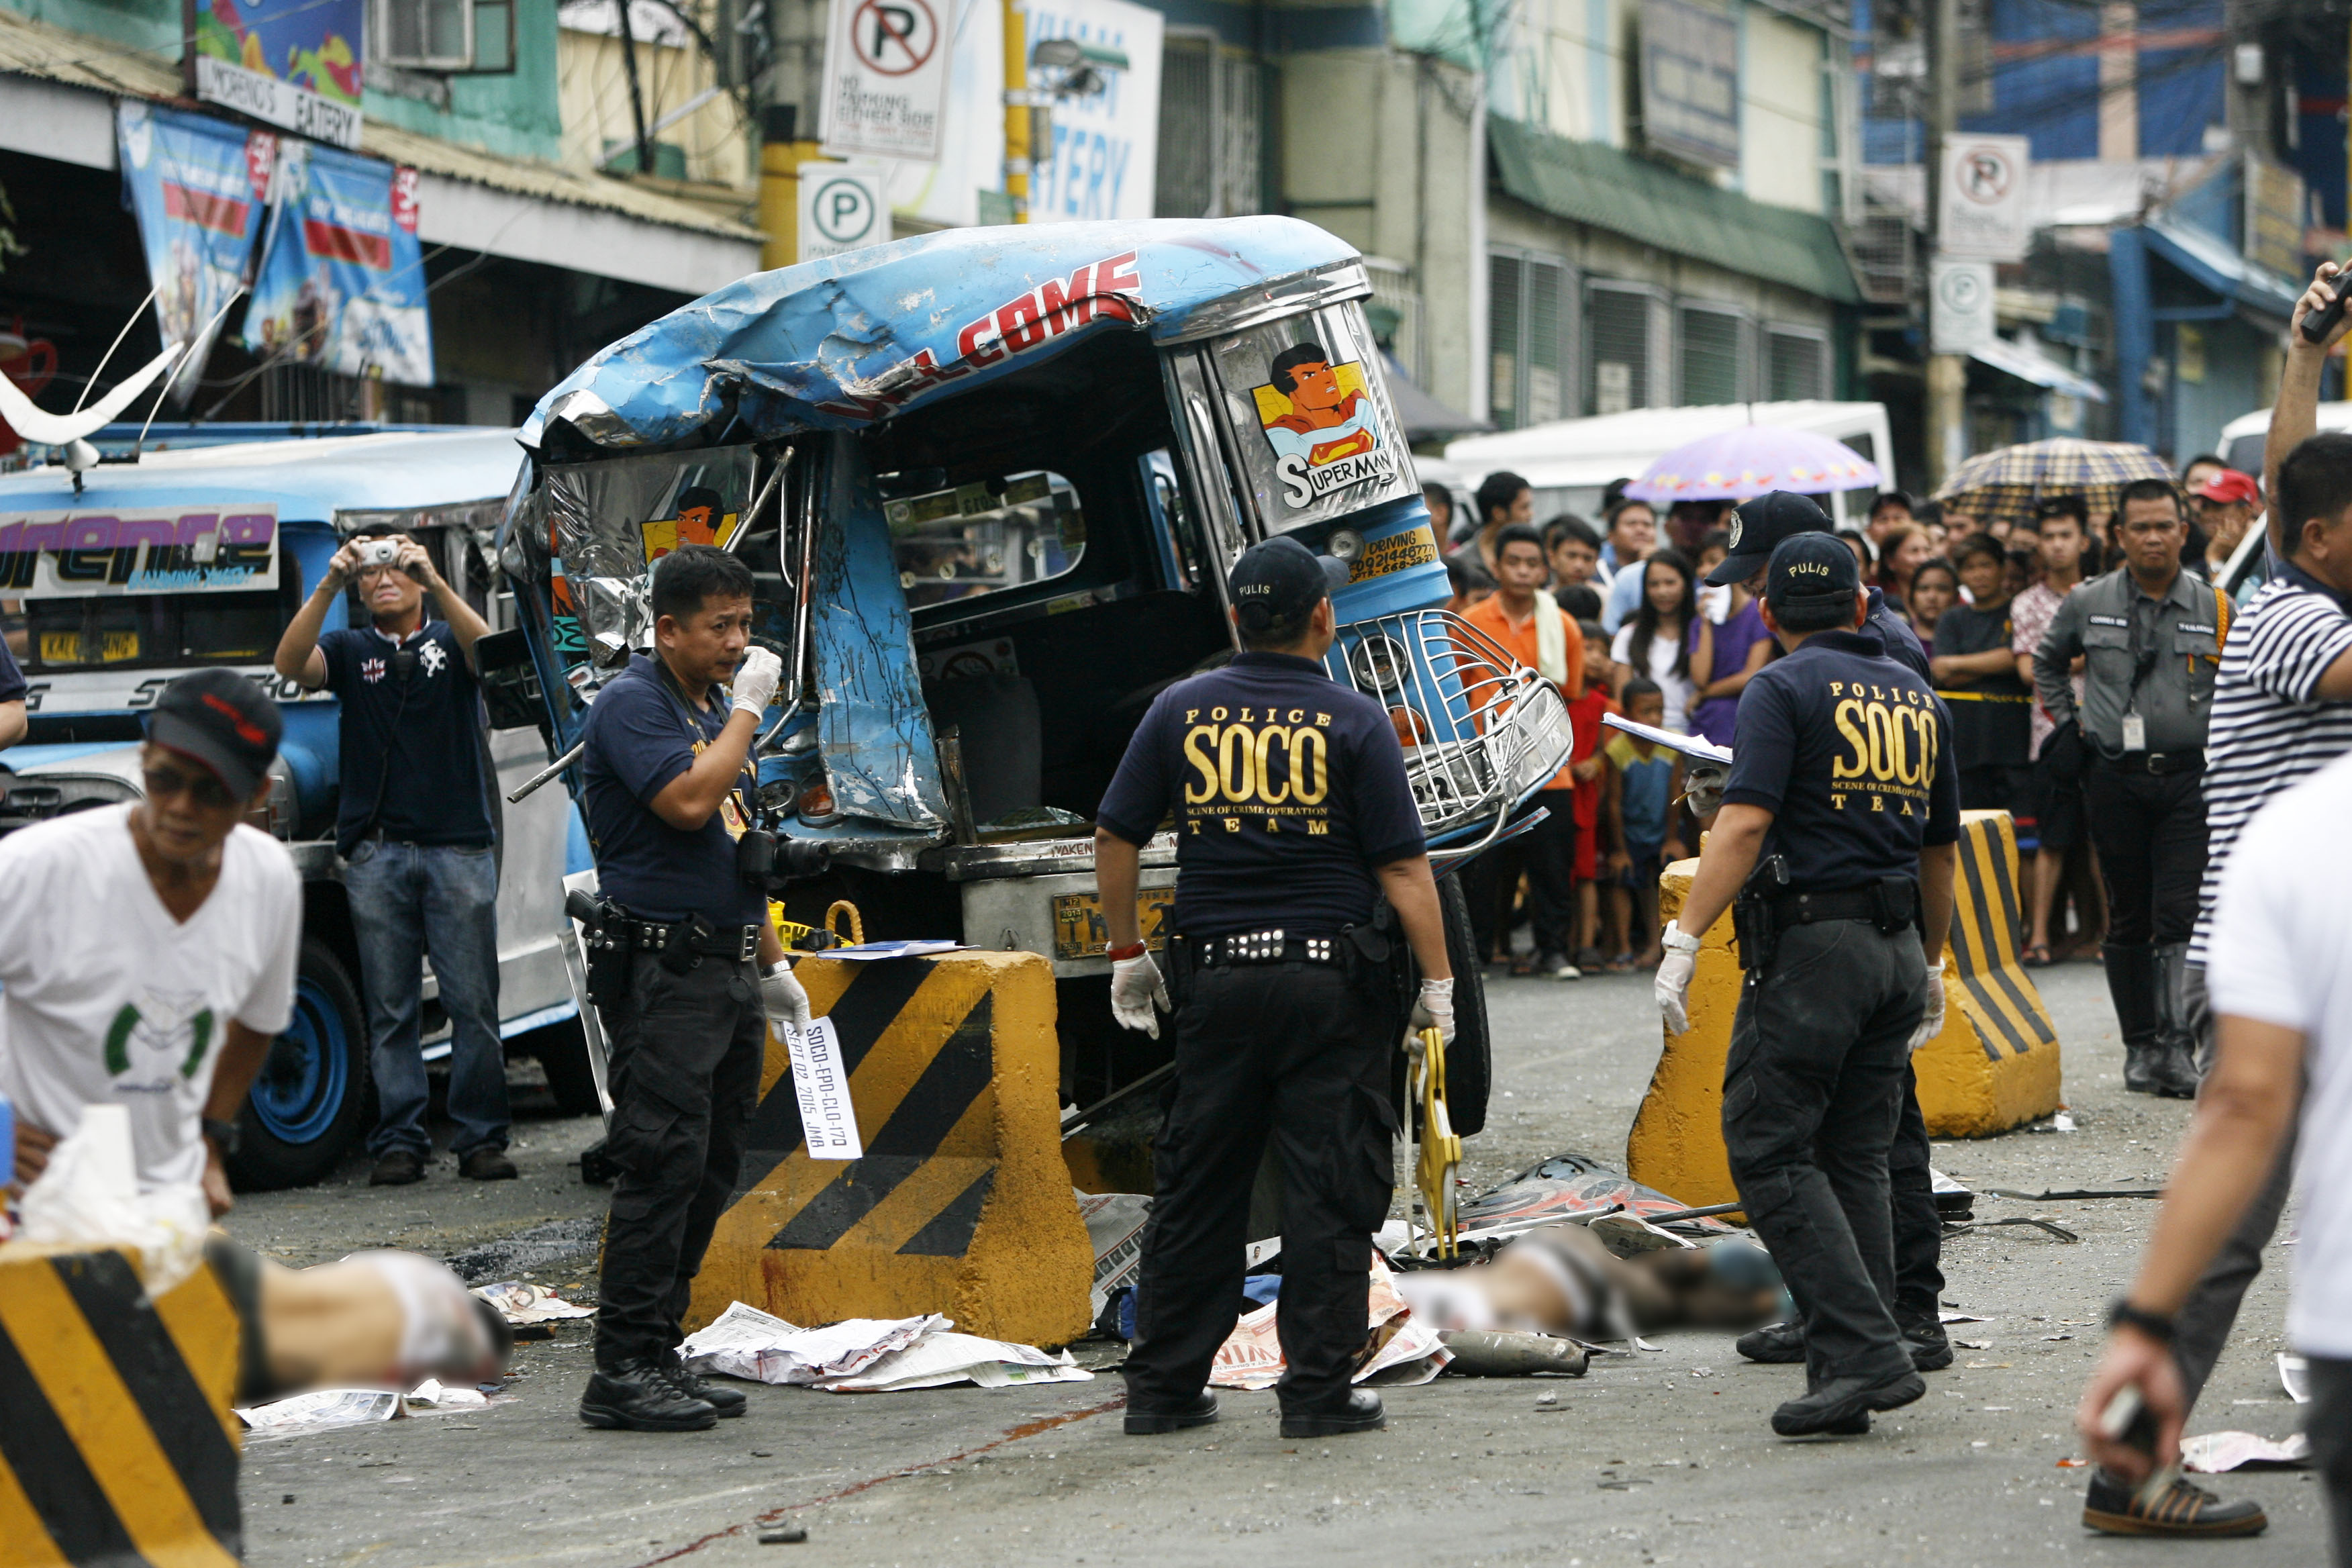 CRIME SCENE. Investigators rush to the accident site along A Bonifacio Avenue in Barangka, Marikina City, where two died on the spot on September 2, 2015. Photo by Ben Nabong/Rappler